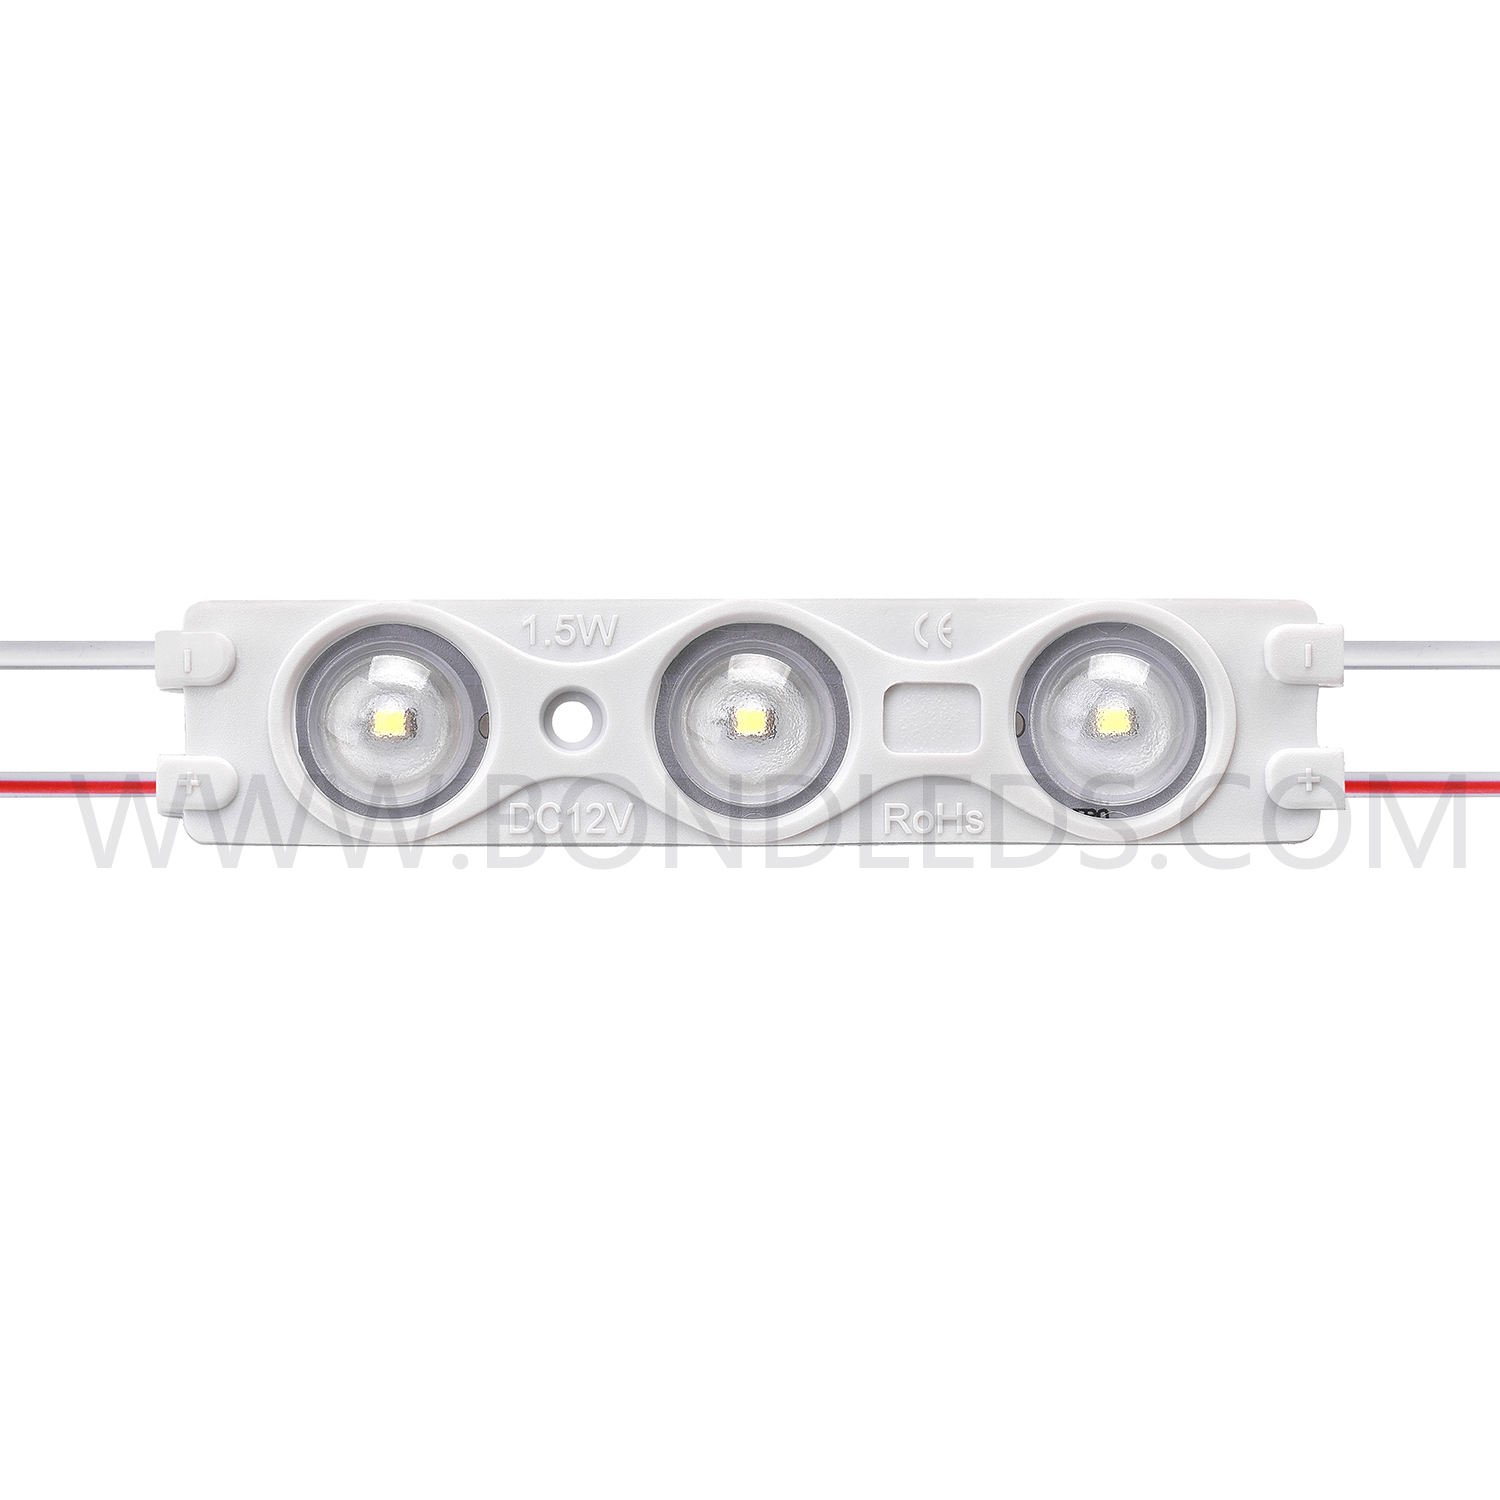 1.5W Cheap price warm white cold  White led module  DC12V 2835 injection module SMD LED Module for sign